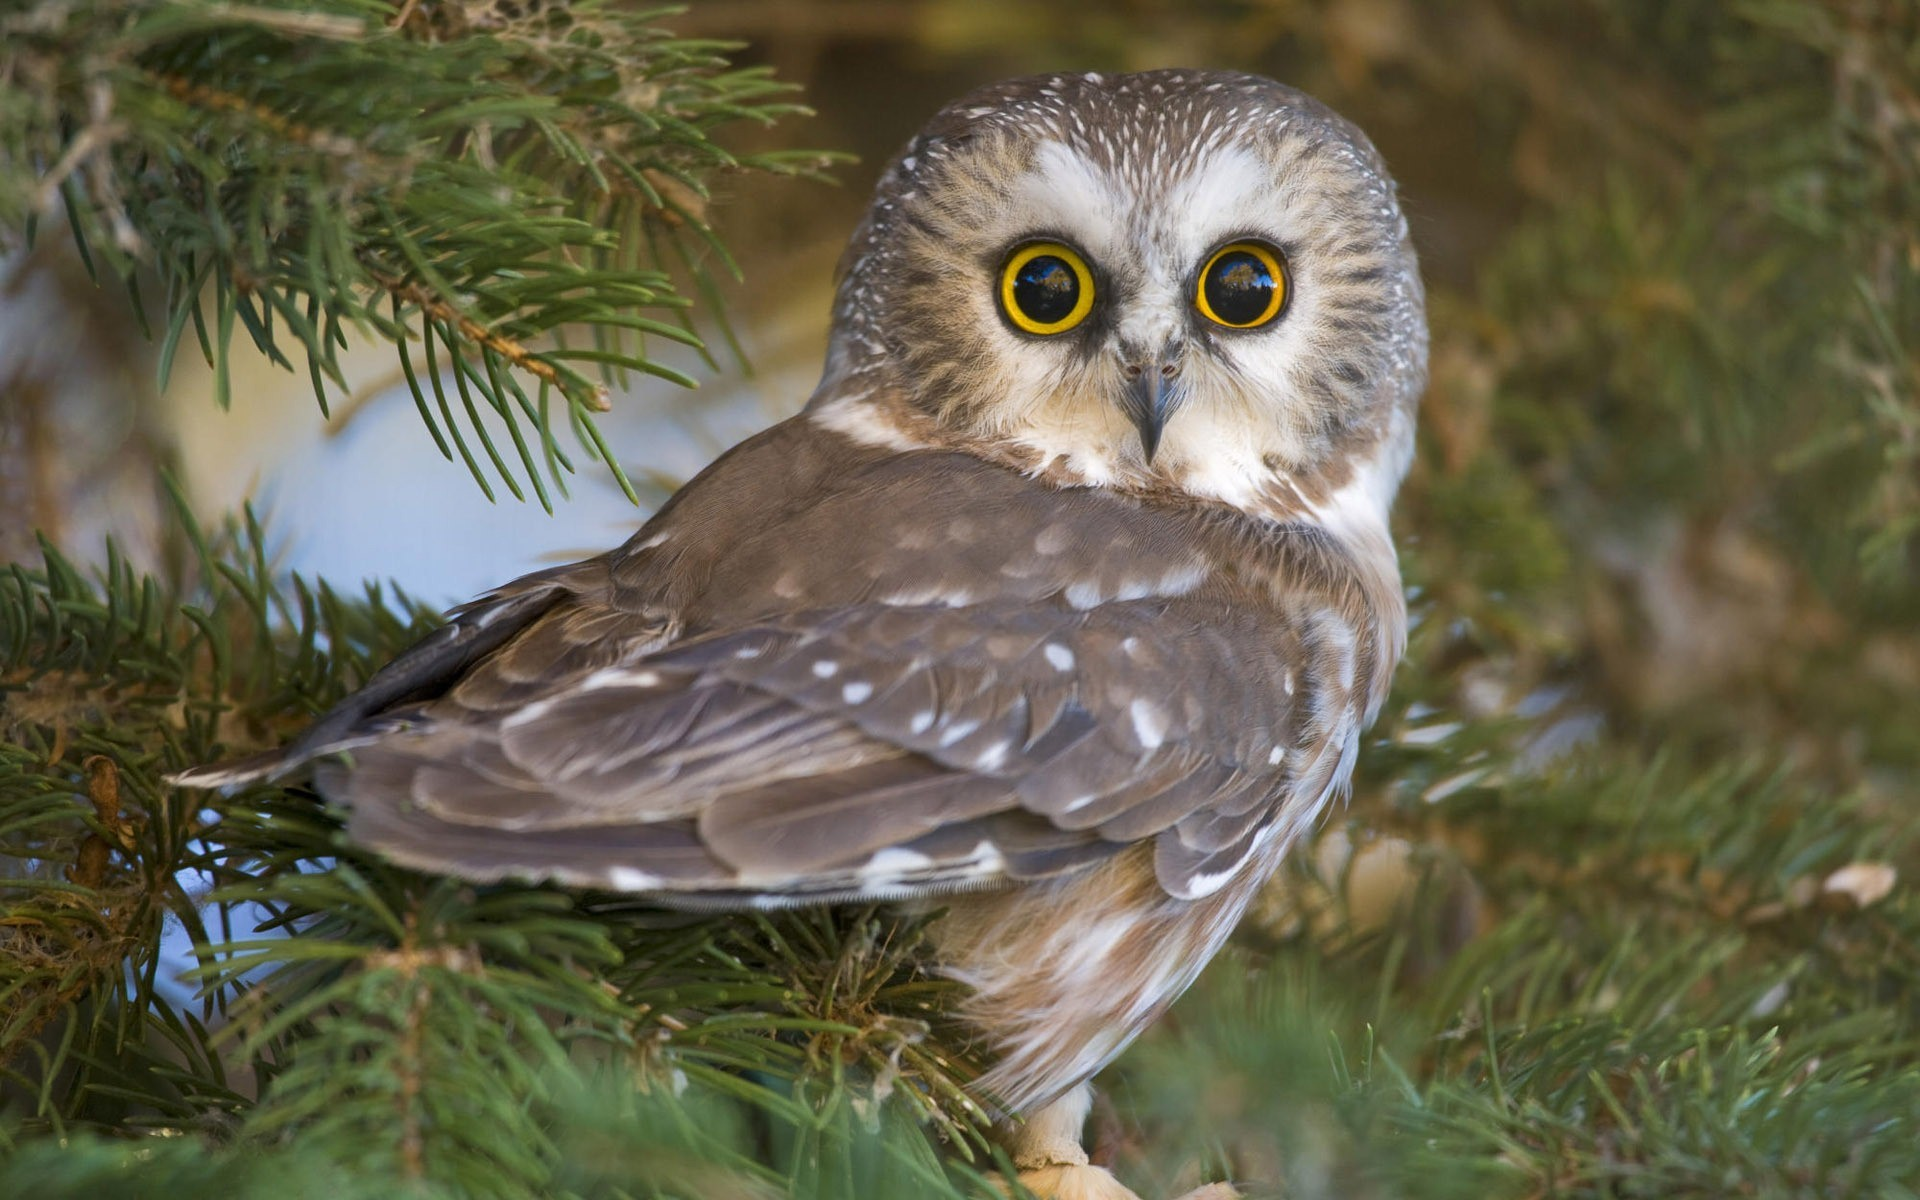 Cute owl bird